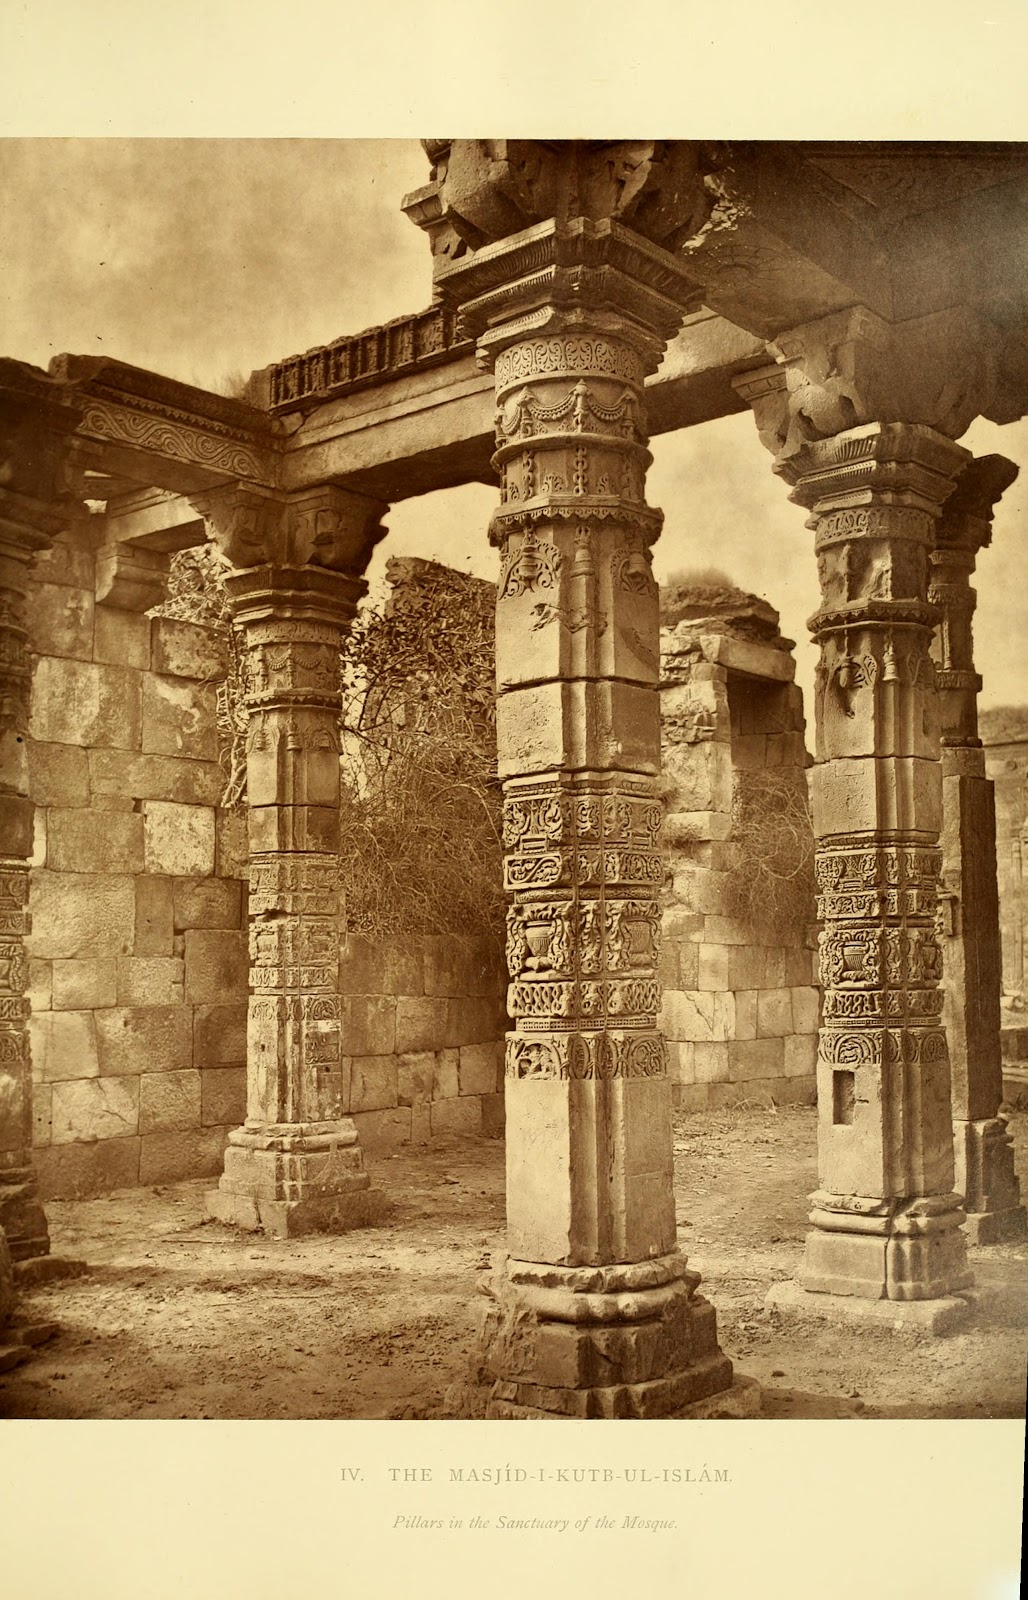 Photographs from the Book The Architecture of Ancient